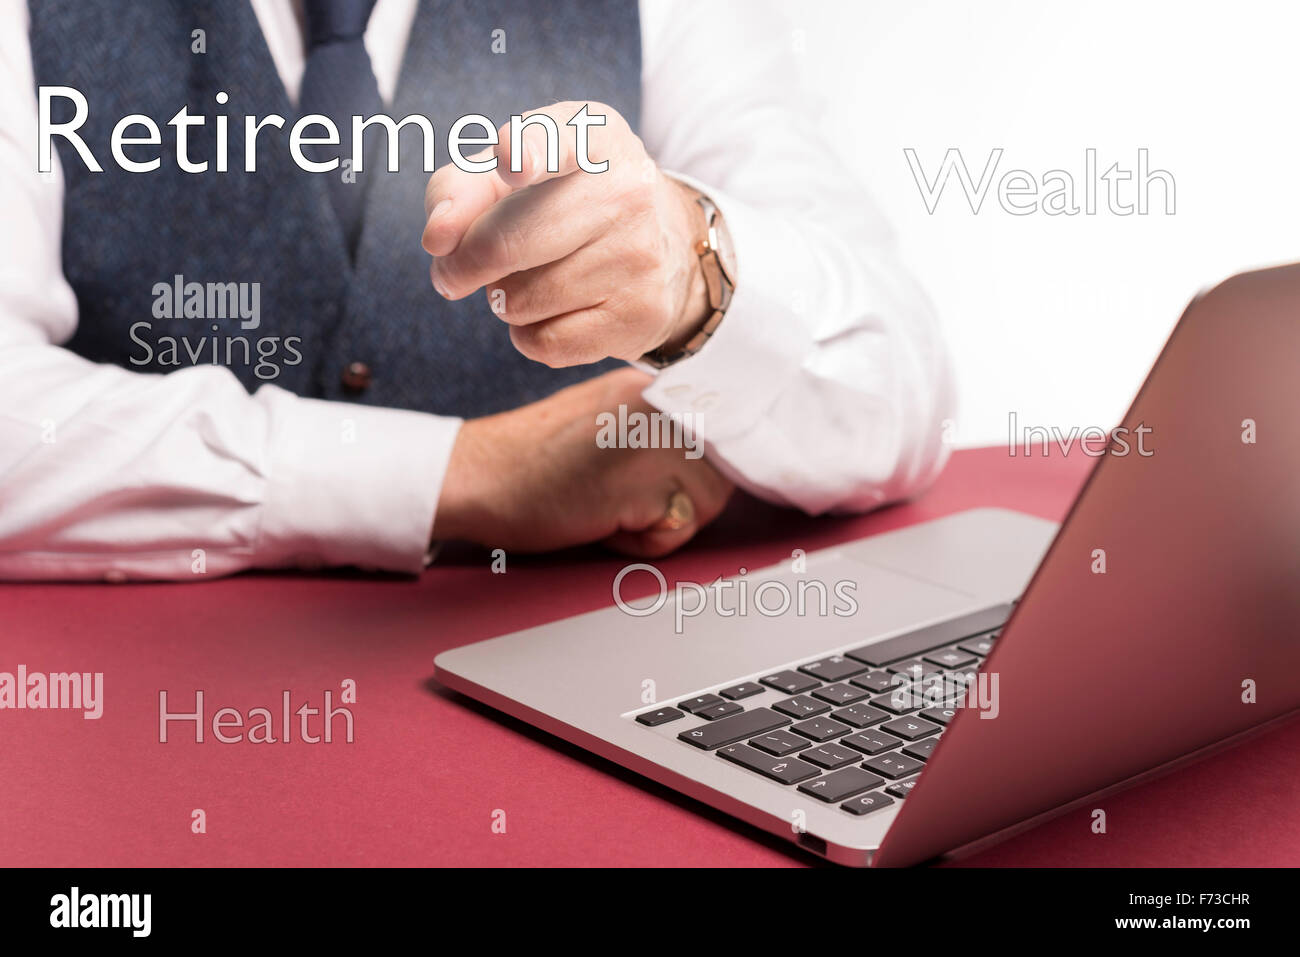 office situation with businessman sitting at desk pointing at the word retirement on a clear screen - Stock Image